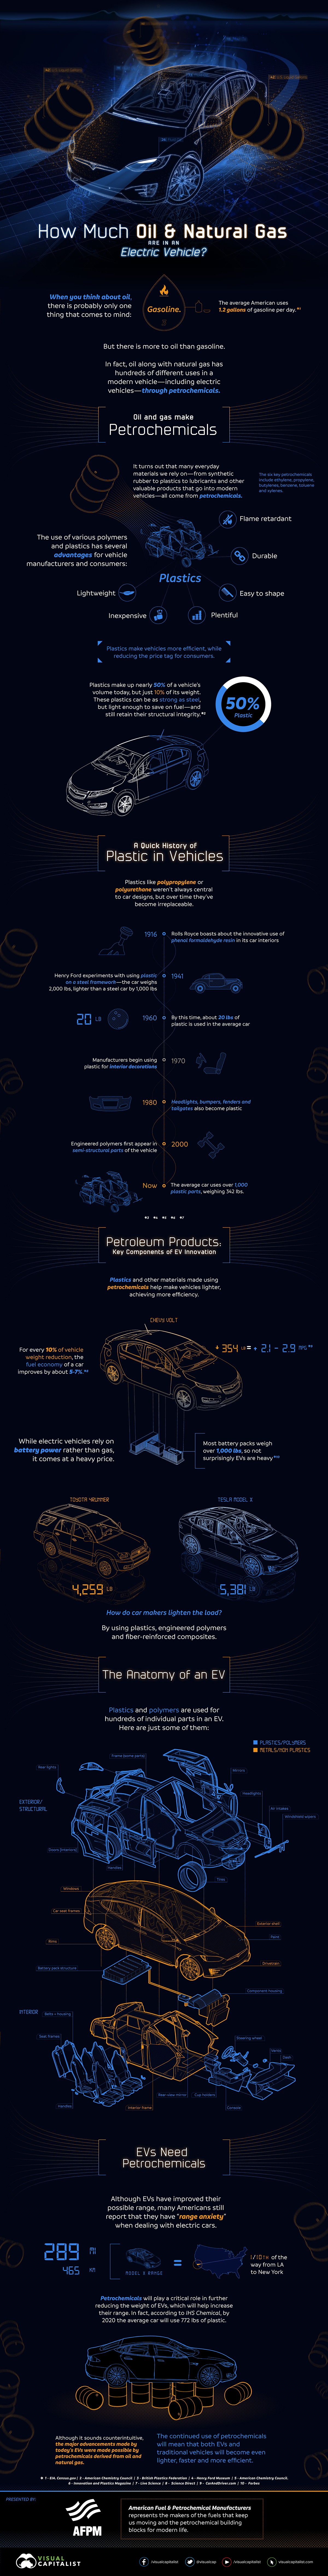 How Electric Vehicles Need Petrochemicals to Run: The Real Story - Infographic